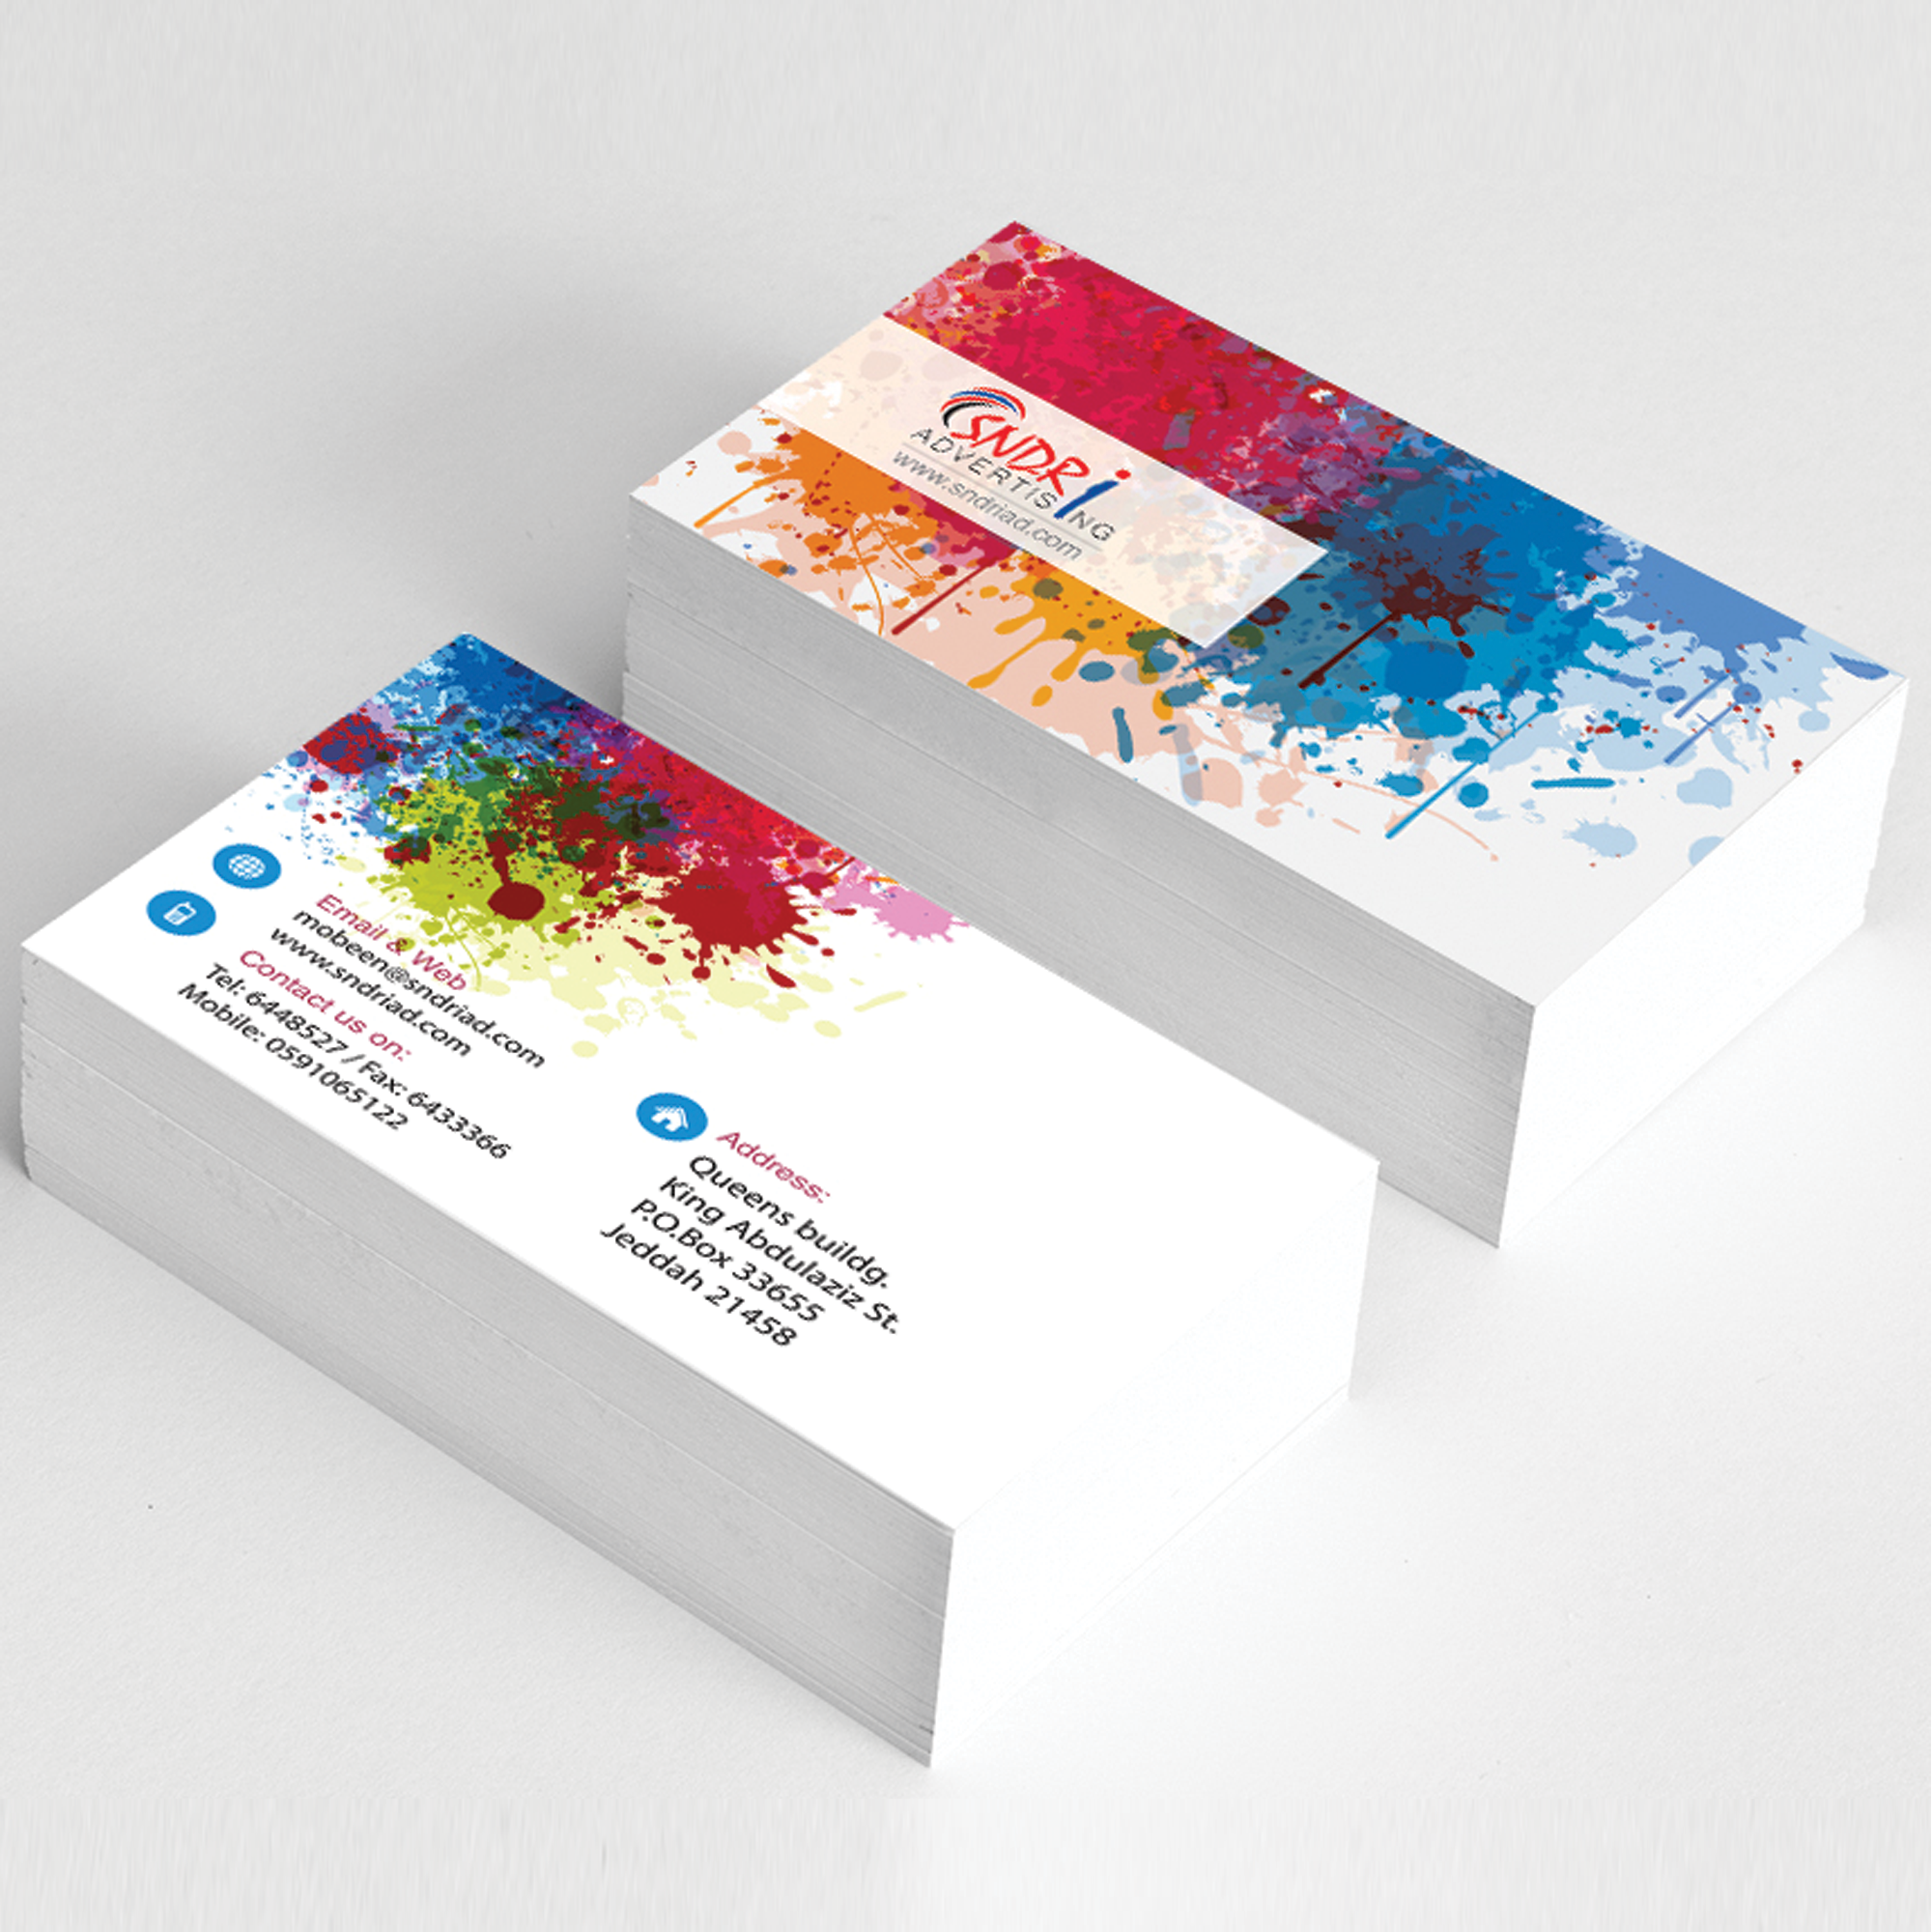 Printer Bees online printing business cards business - oukas.info